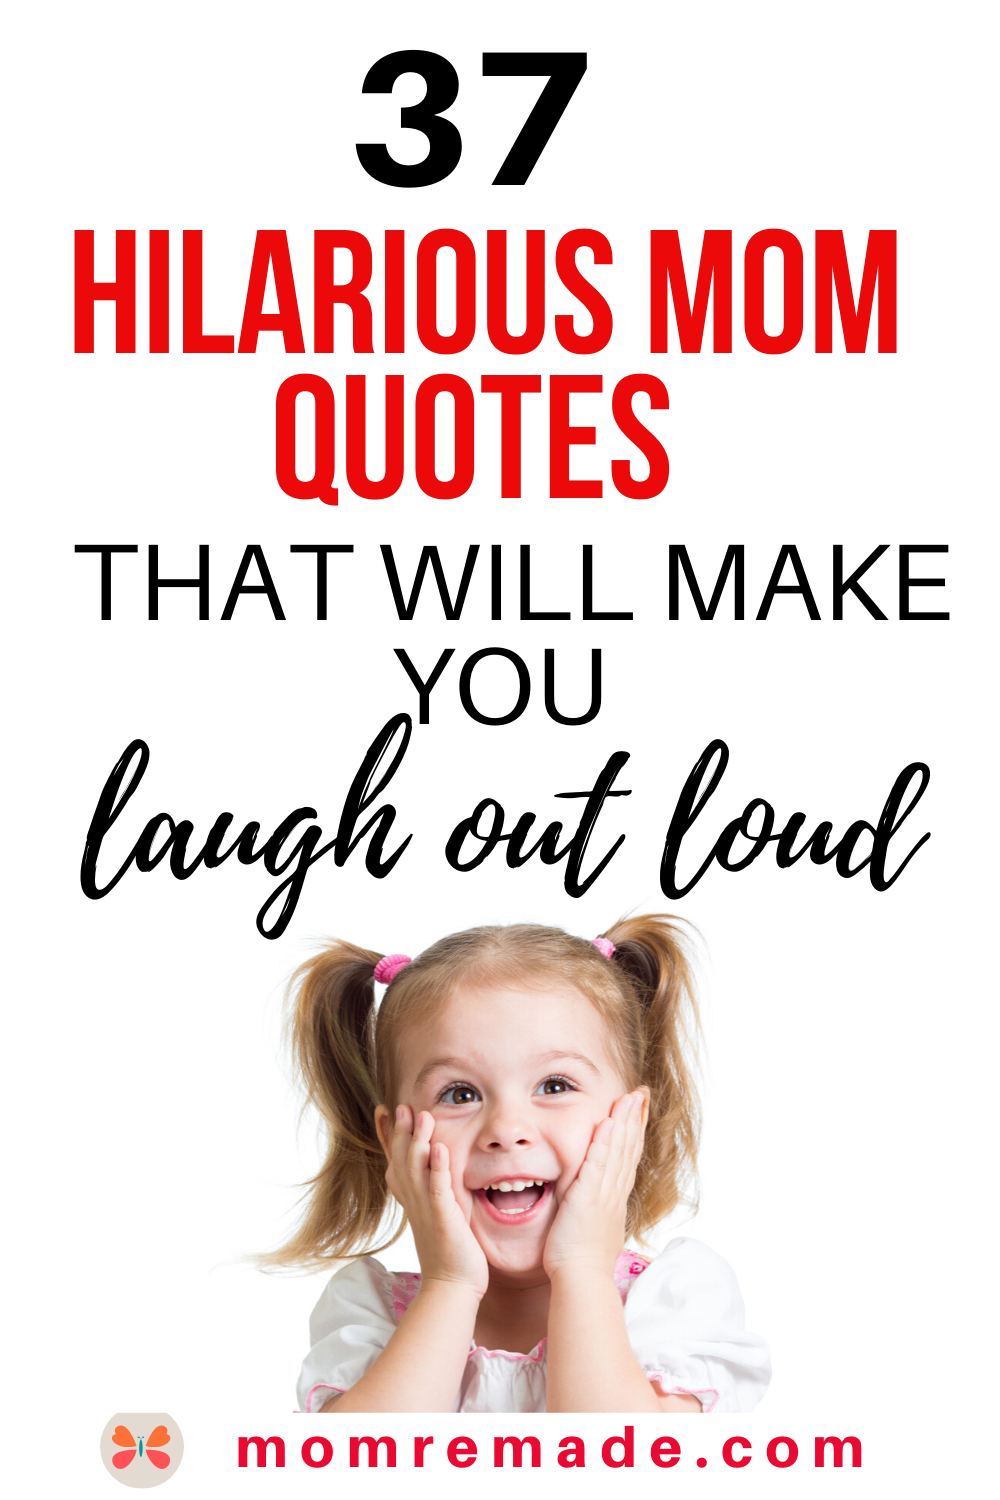 37 Funny Mom Quotes And Sayings That Will Make You Laugh Out Loud Mom Remade Funny Mom Quotes Mom Humor Mom Quotes